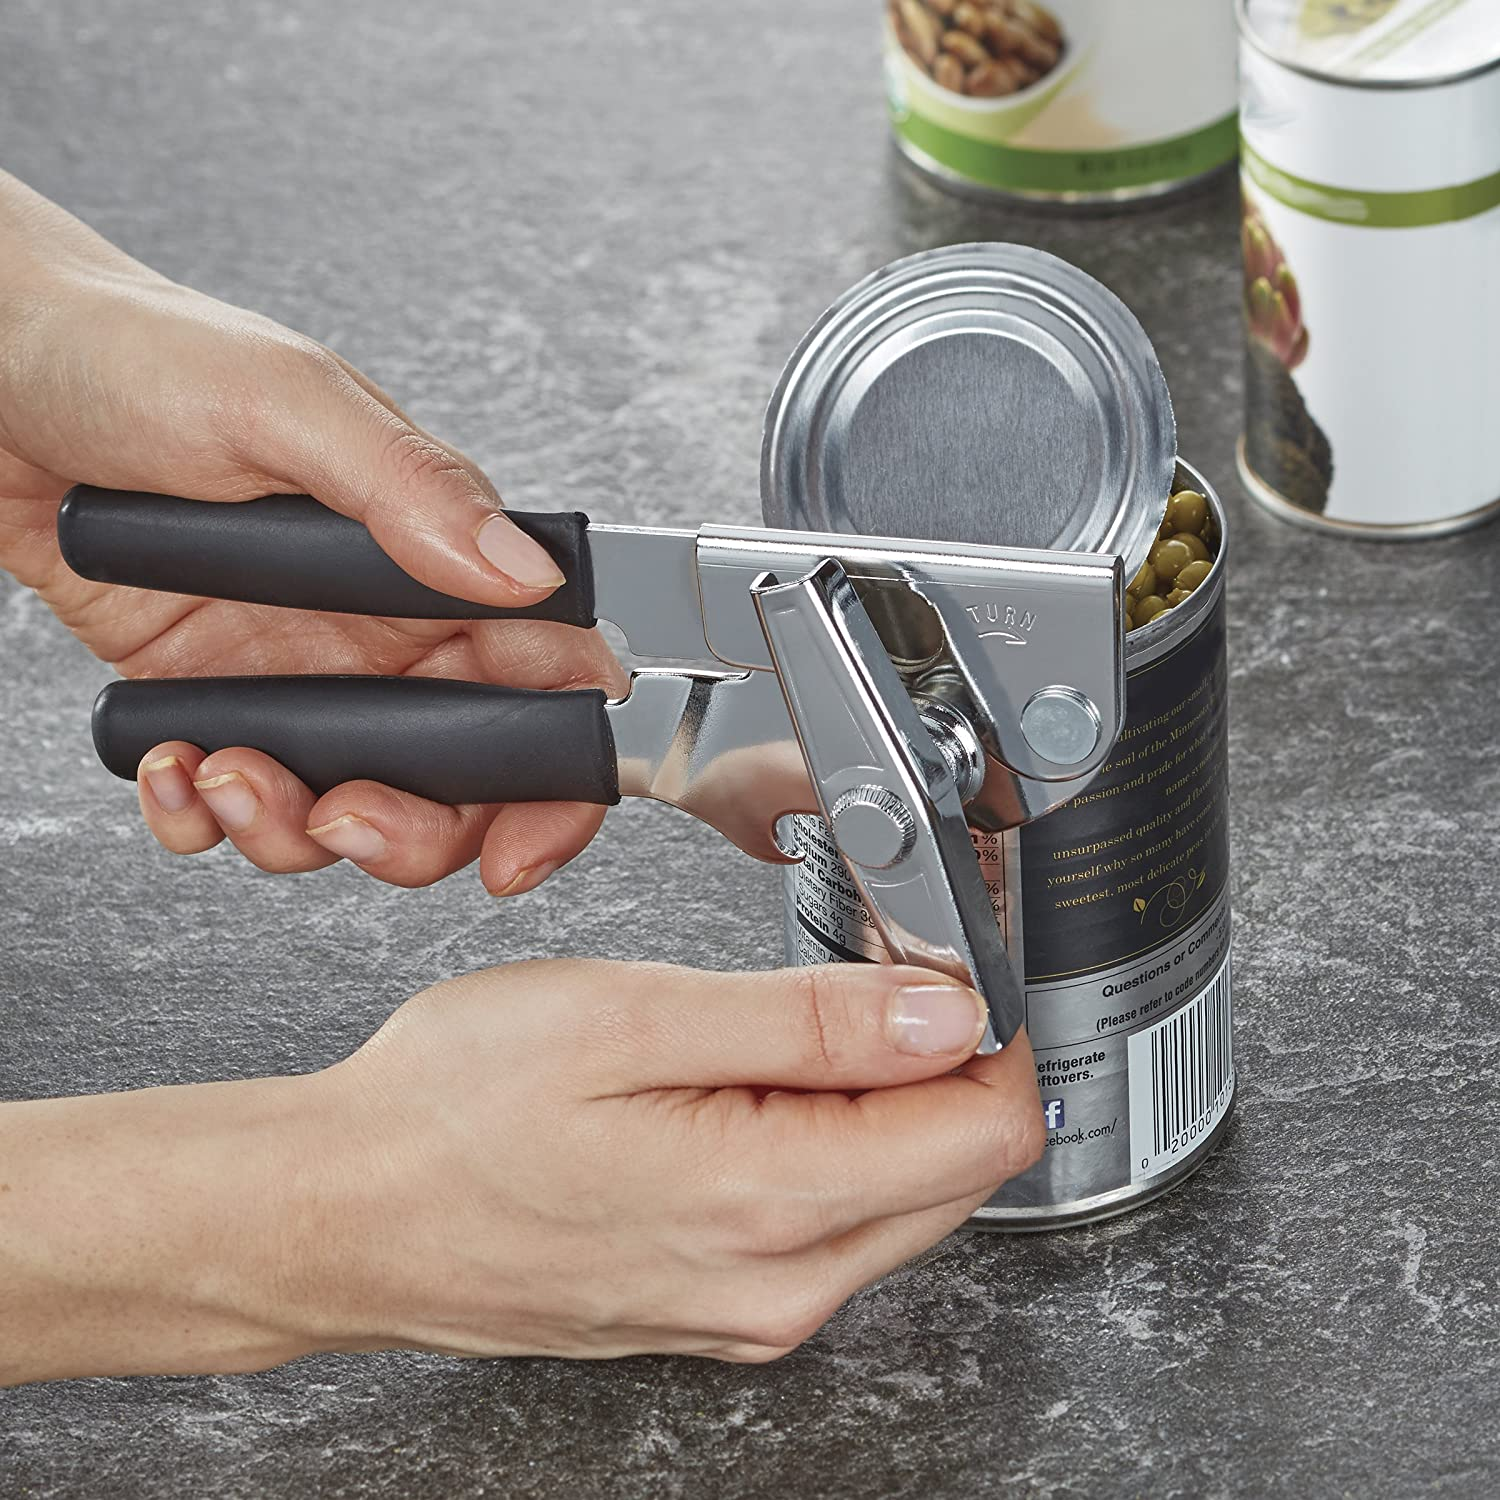 Swing-A-Way Portable Can Opener, Black: Kitchen & Dining